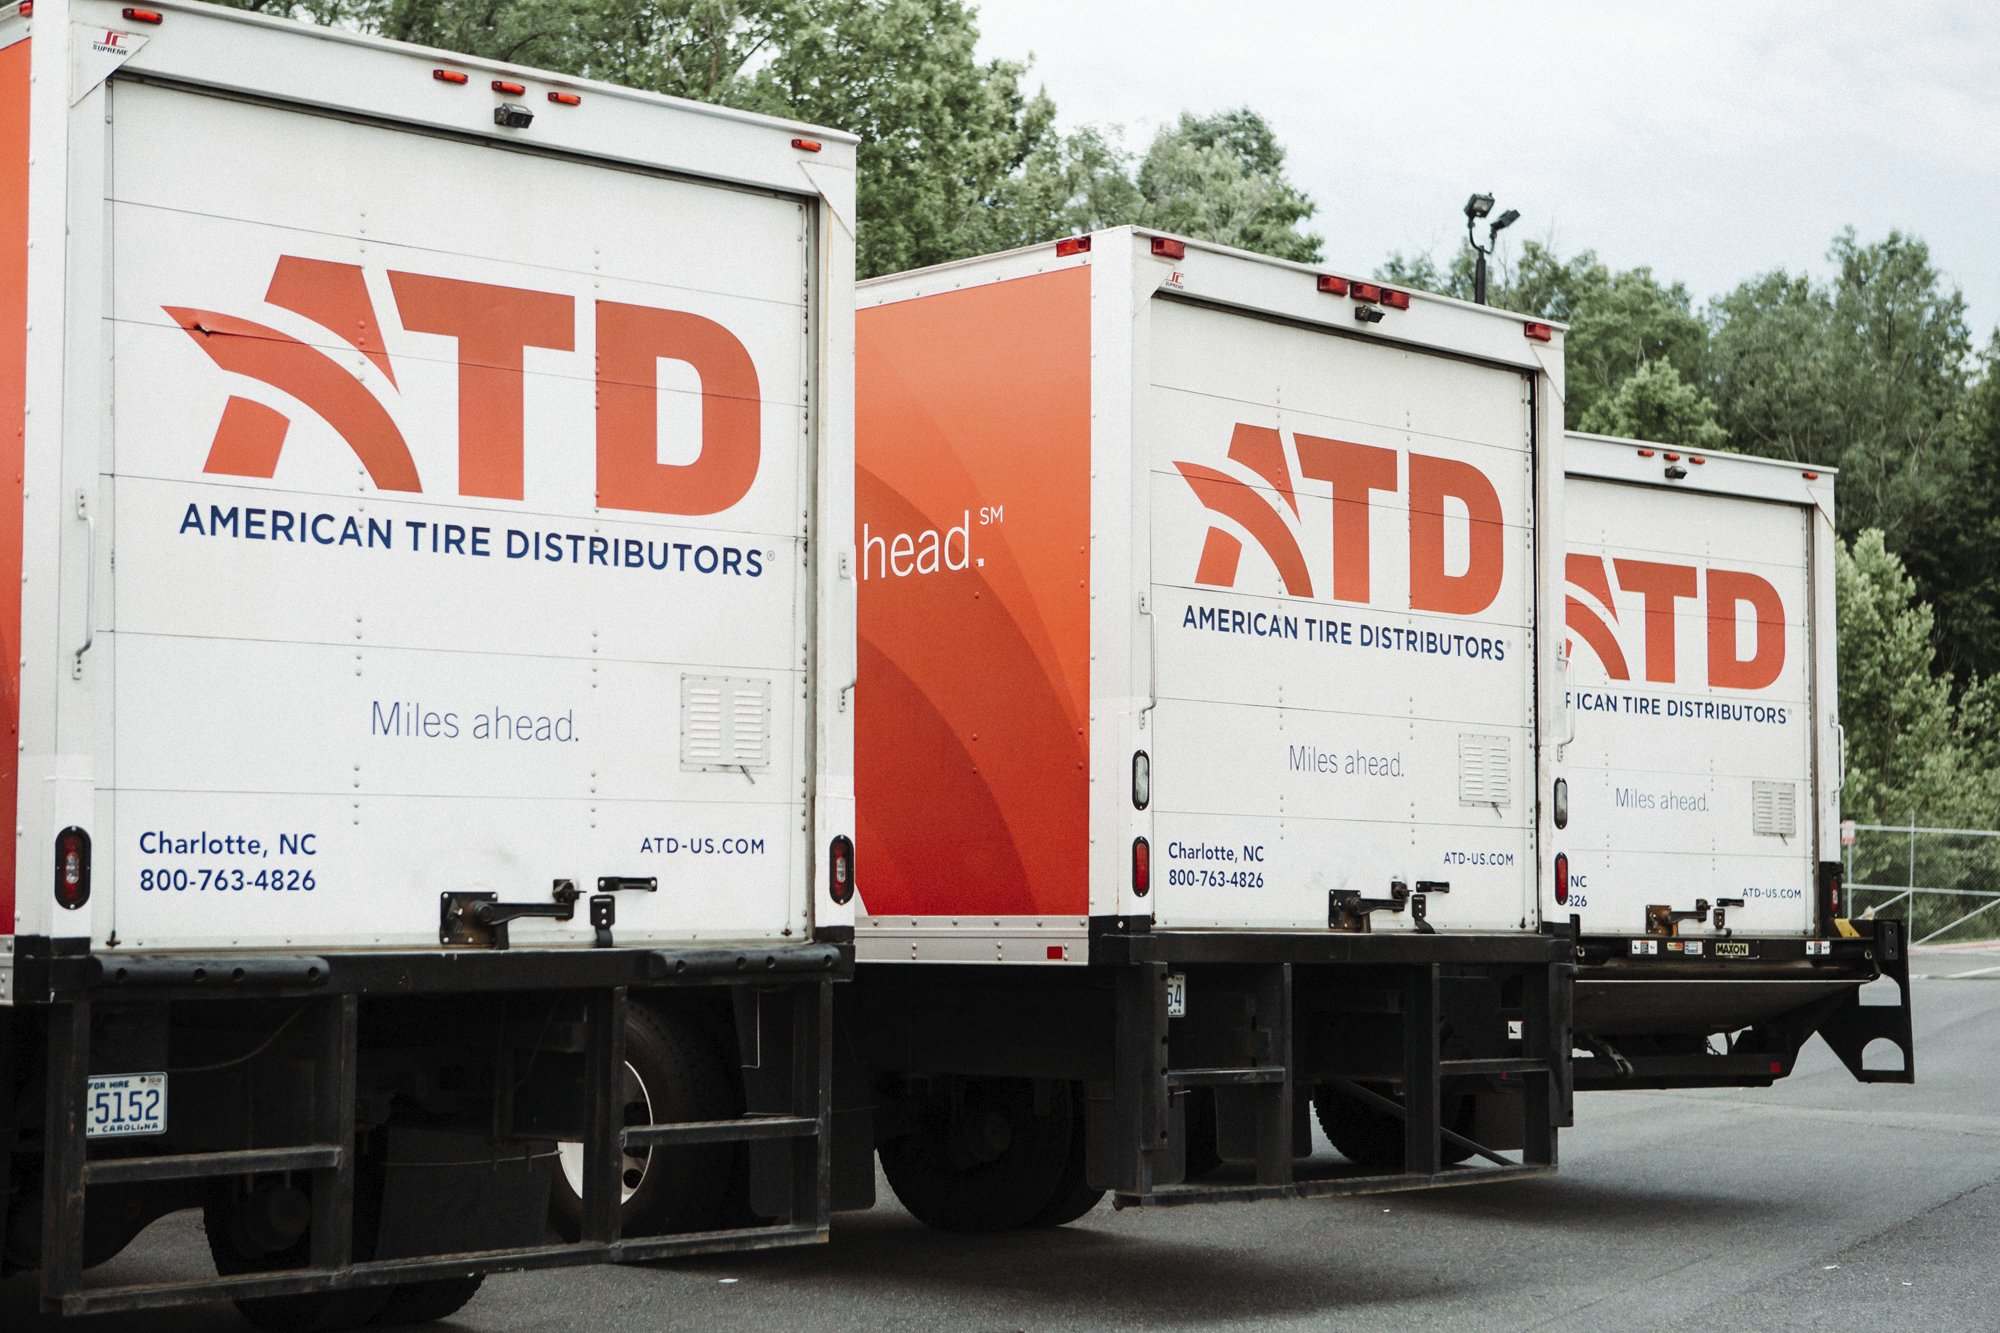 ATD Exec Talks Digital Tools, Tire Supply and Going Green